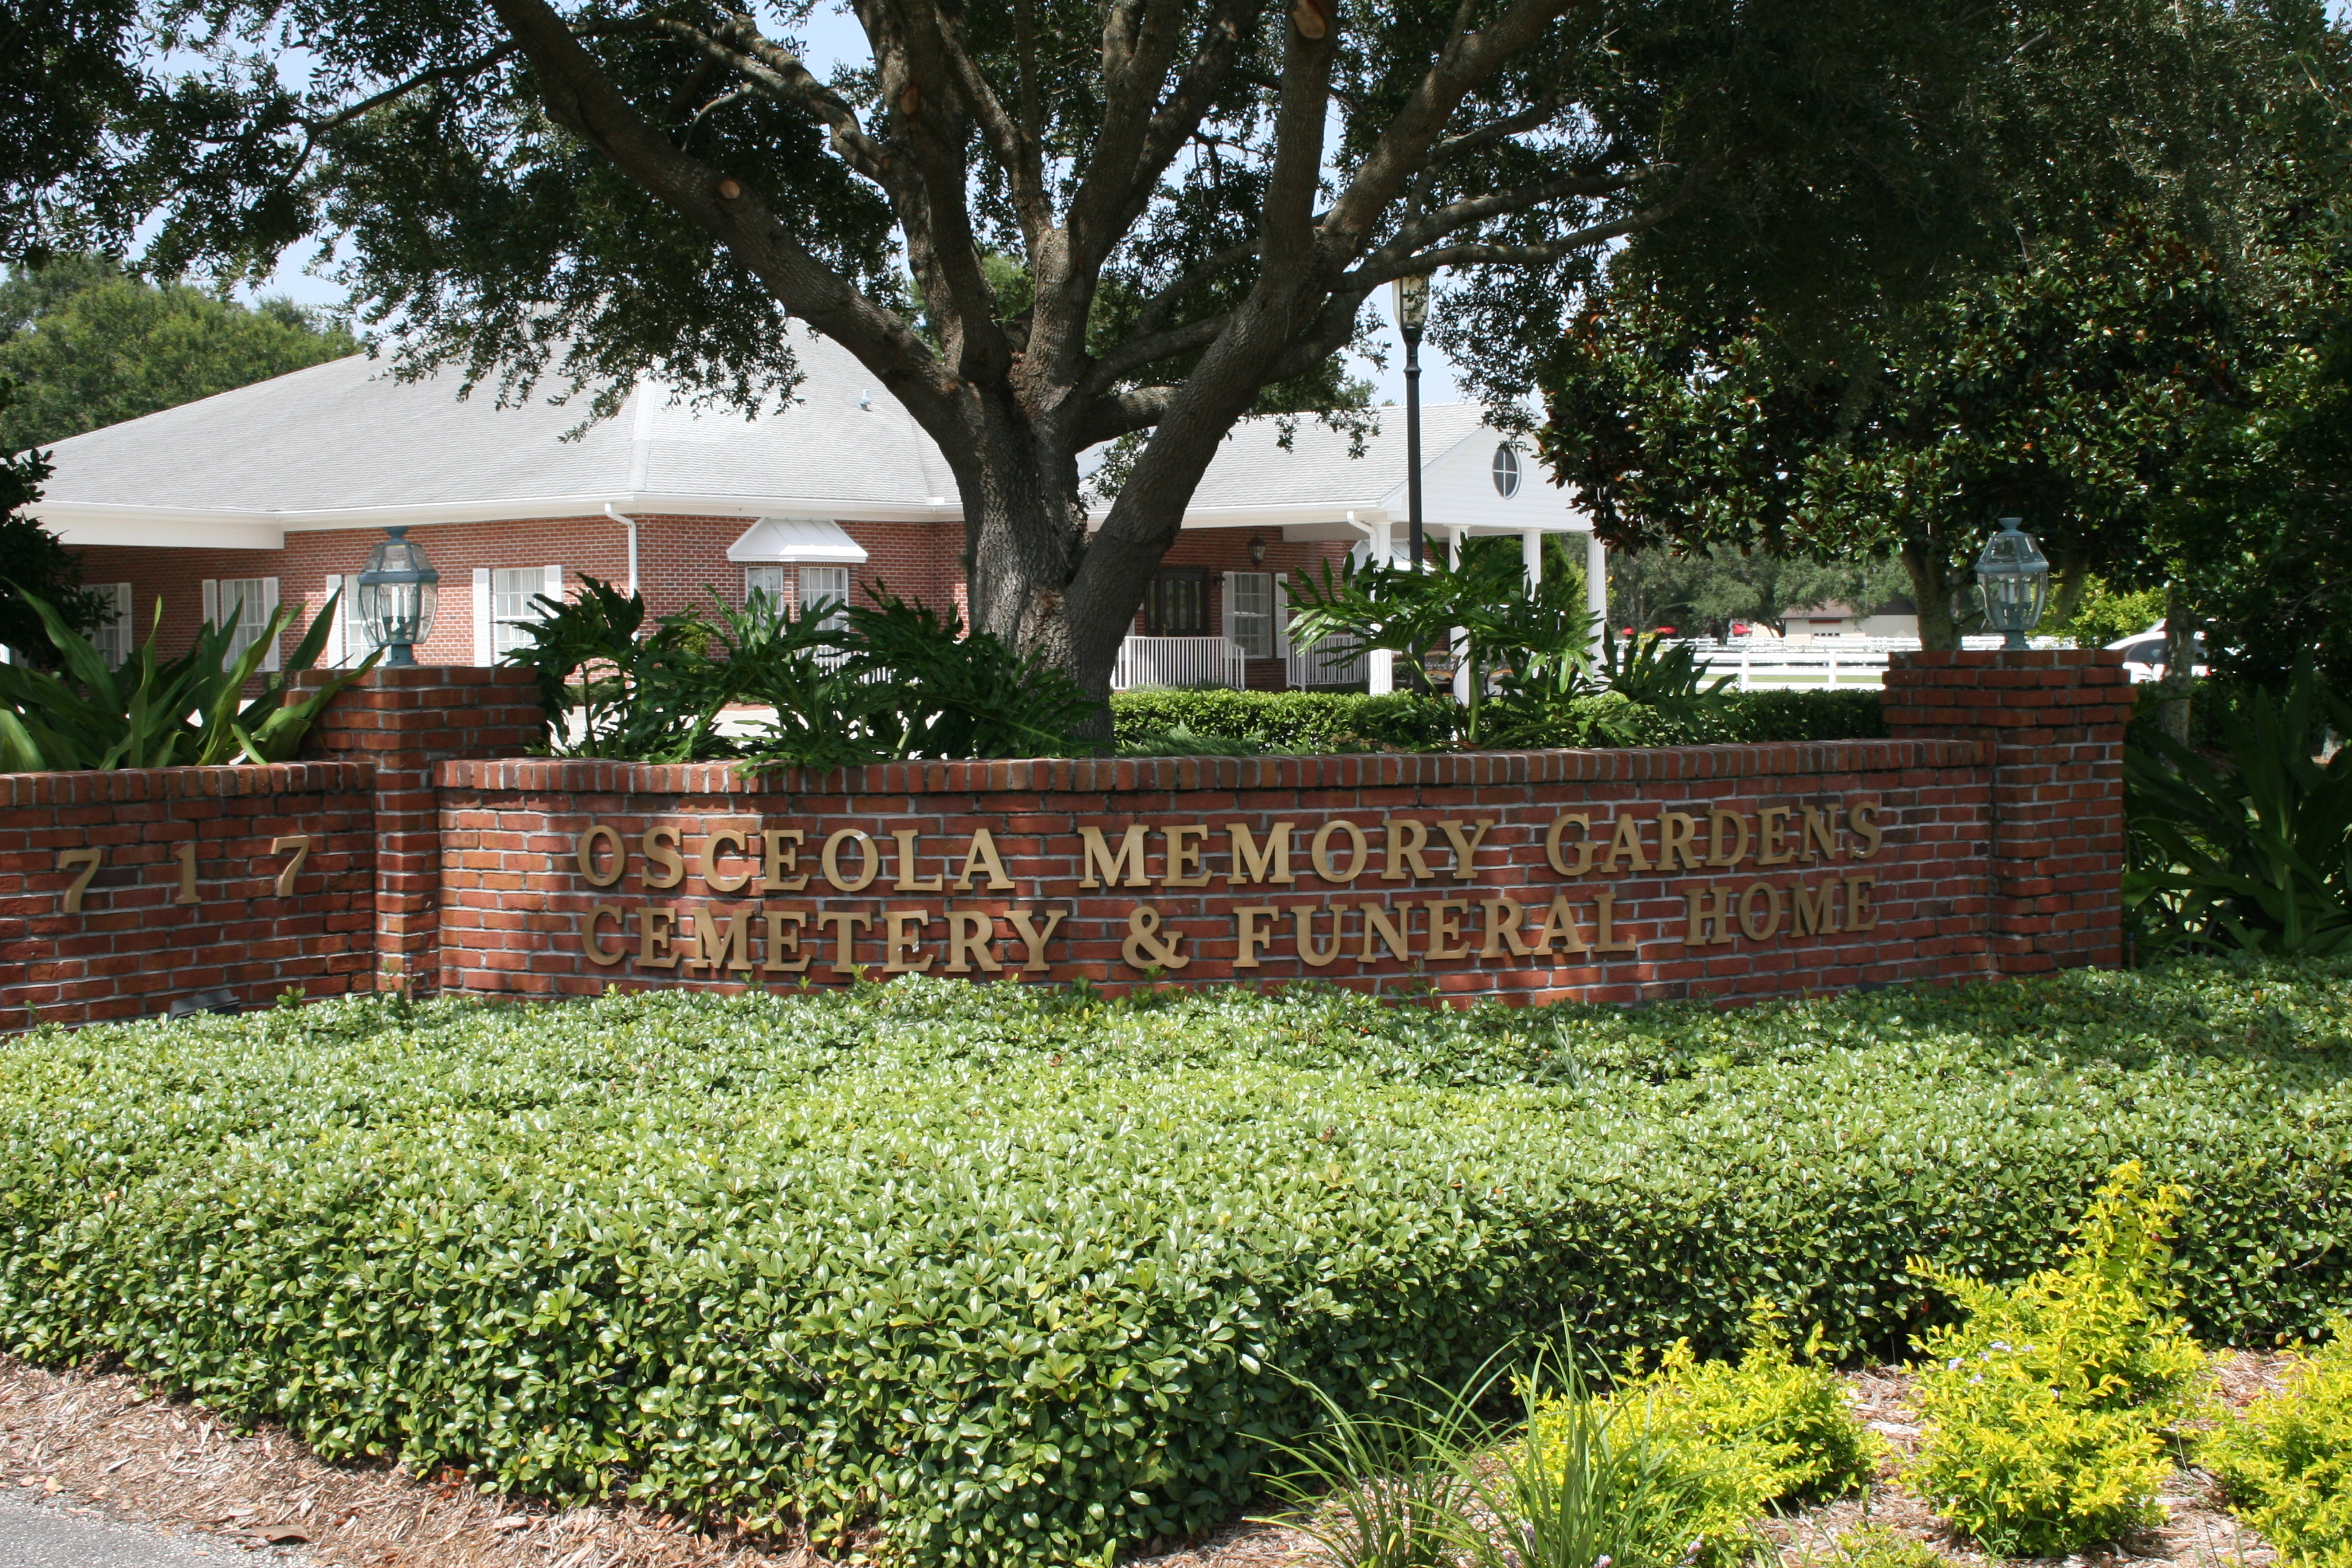 Osceola Memory Gardens Cemetery Funeral Homes & Crematory image 5